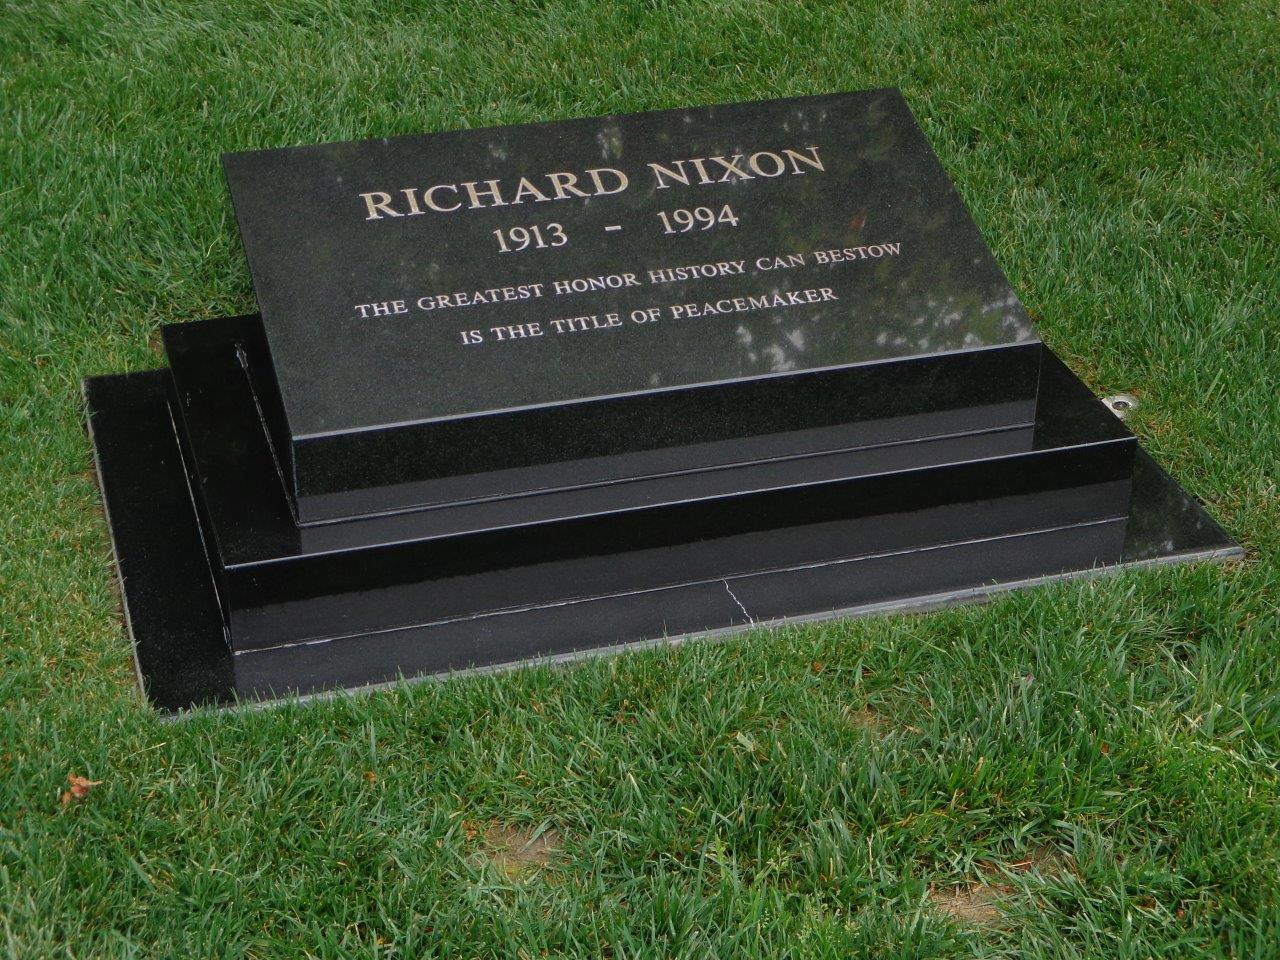 Richard Nixon gravesite and burial location